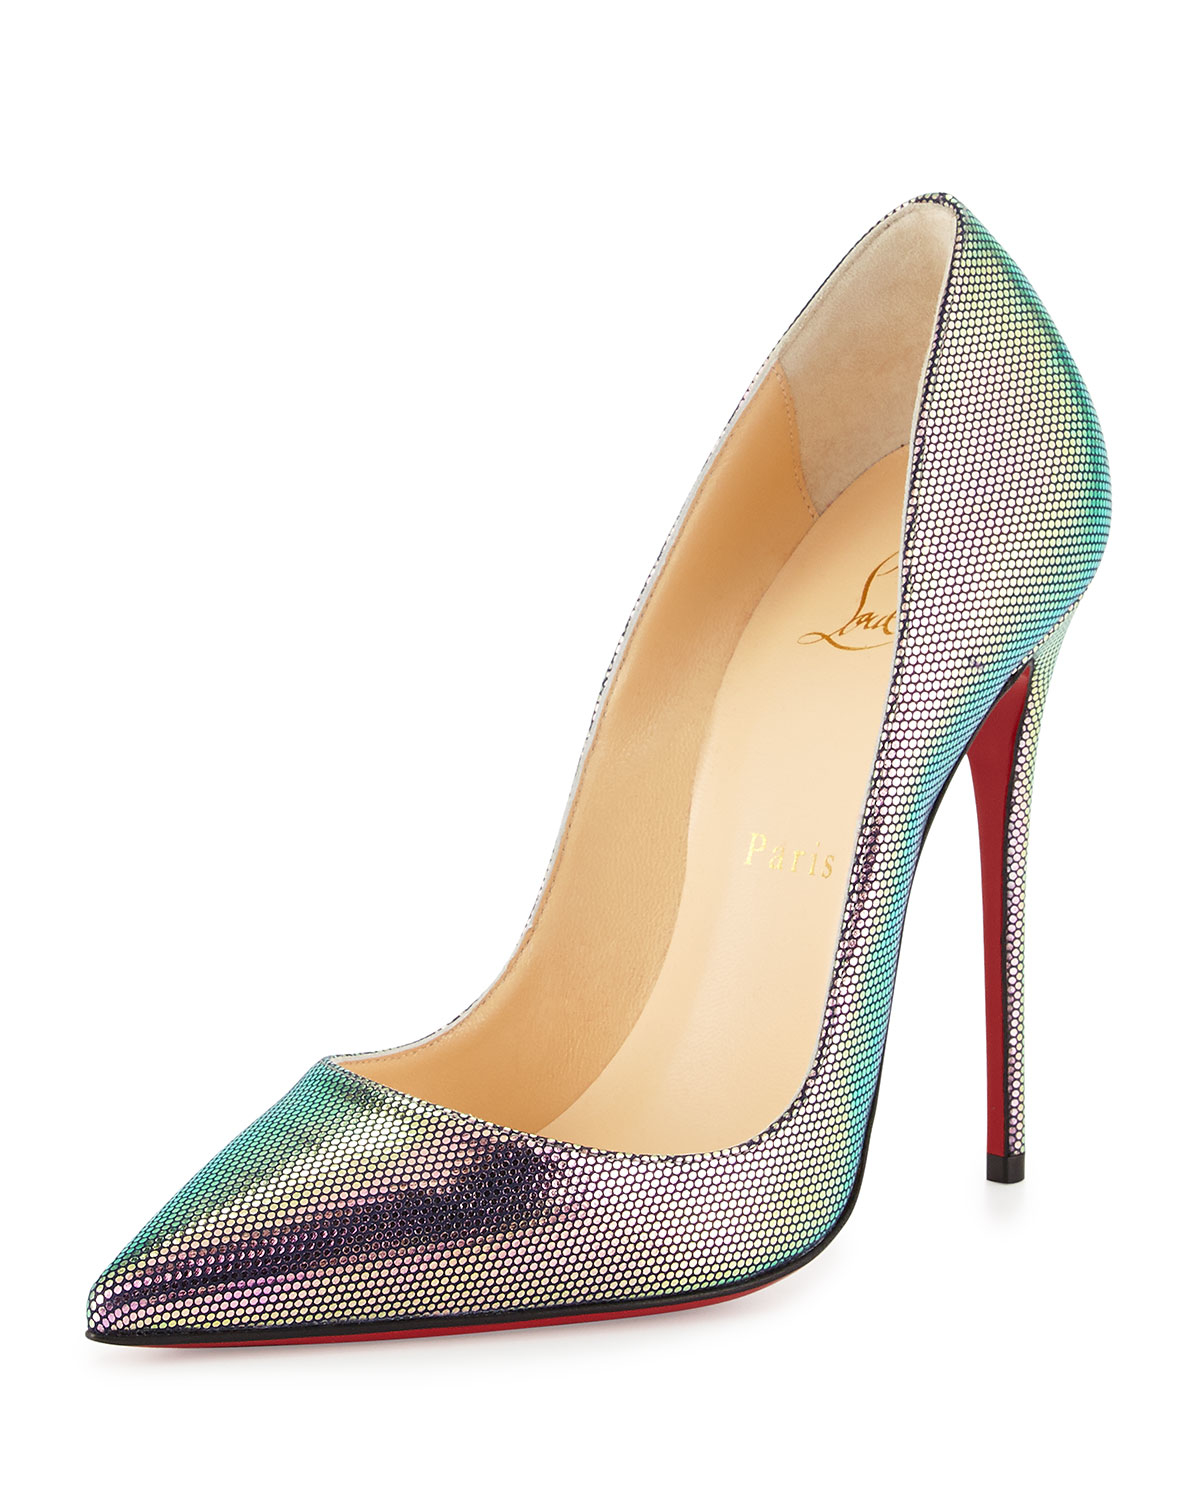 Christian louboutin So Kate Disco Red Sole Pump